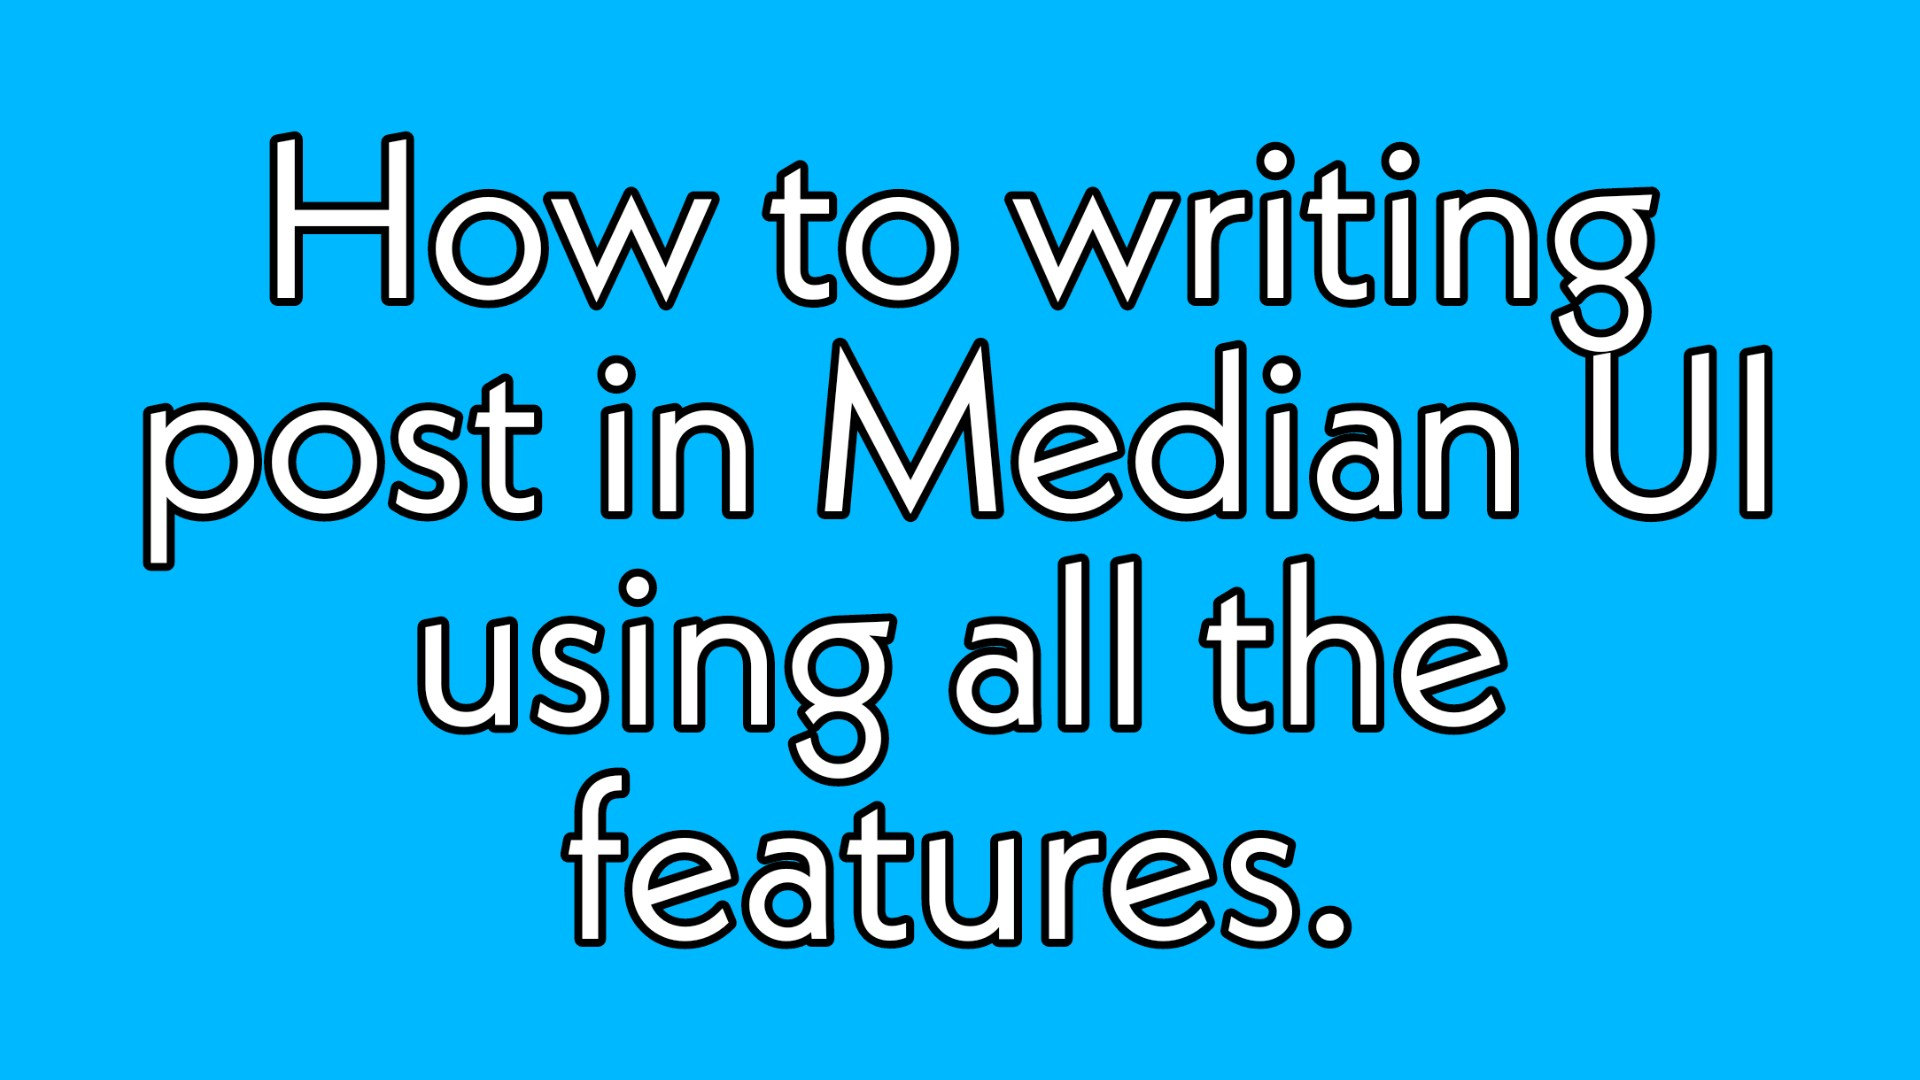 How to write post in Median UI